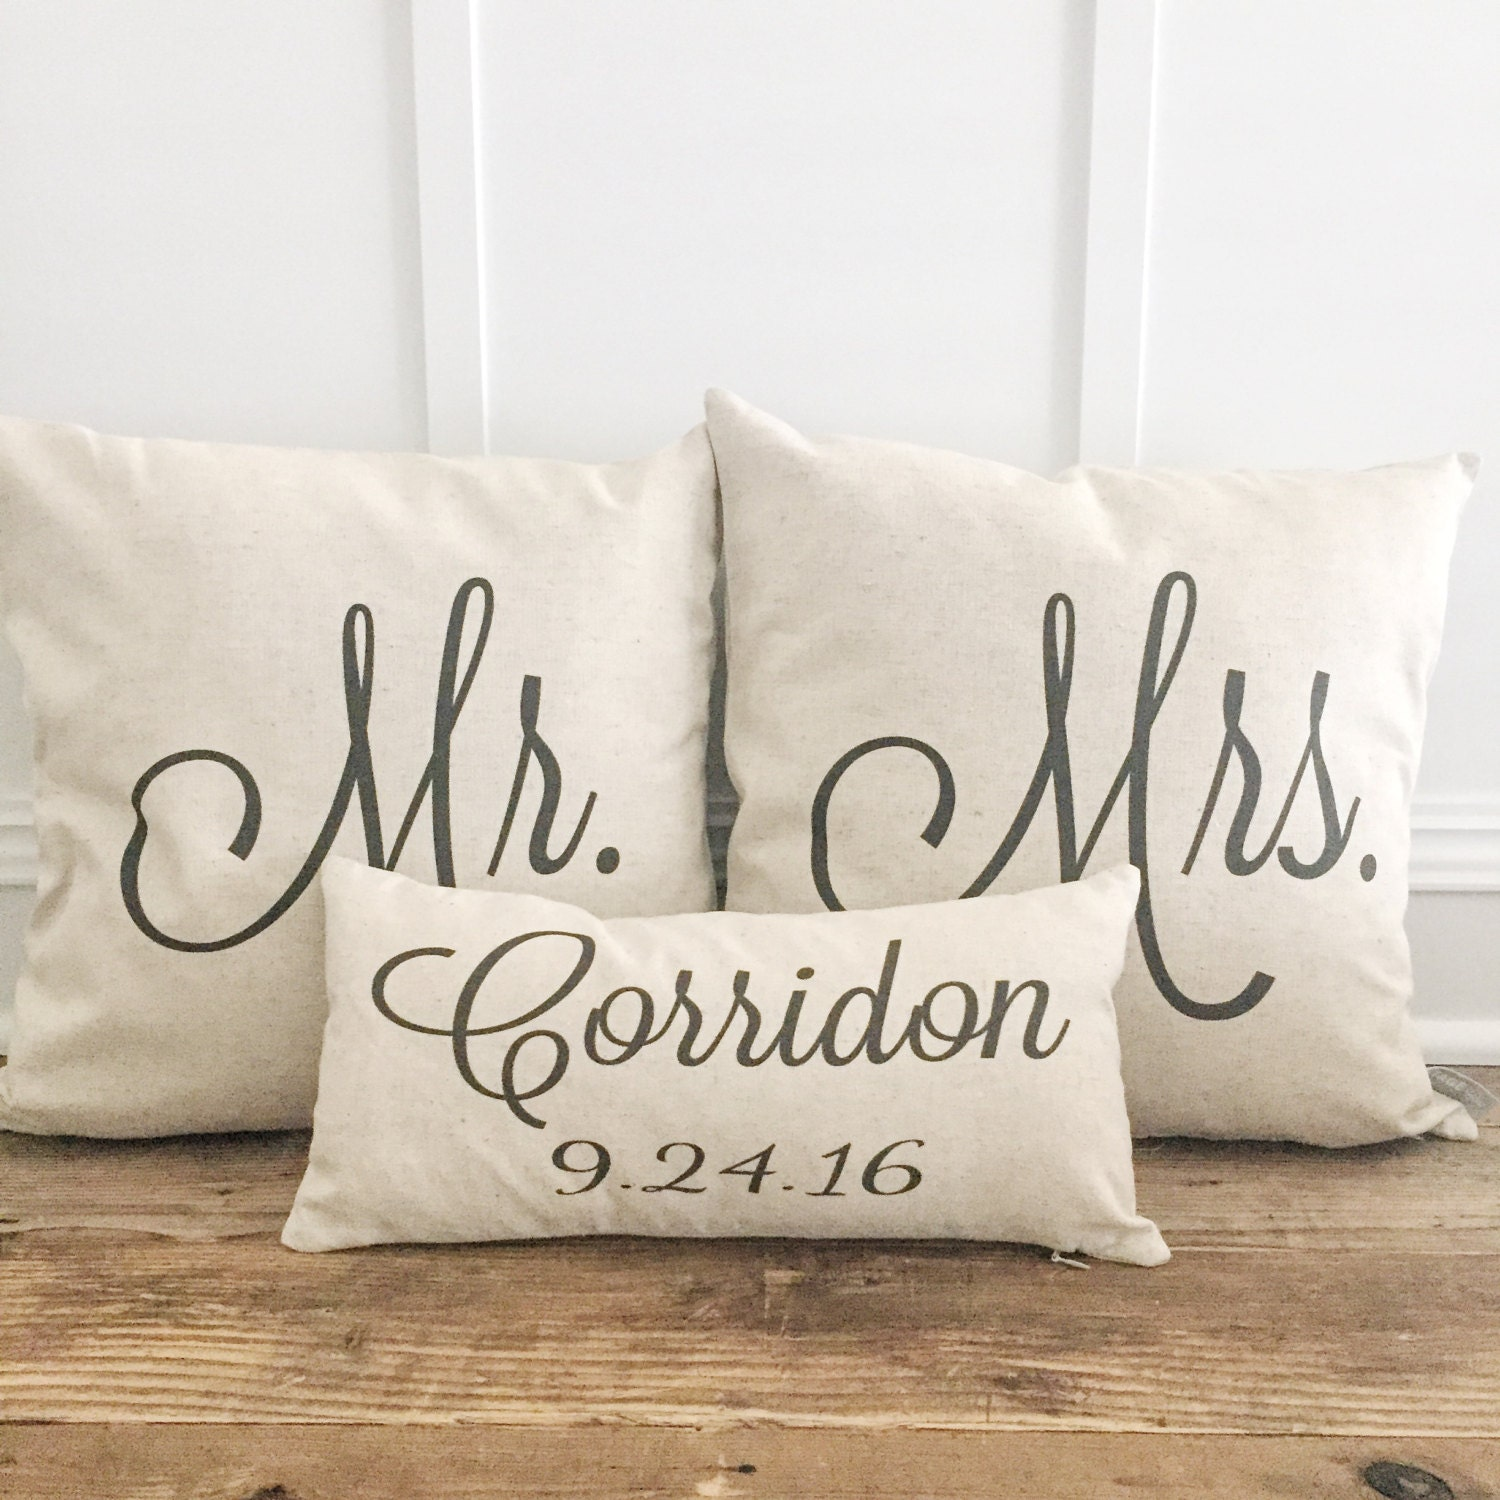 Mr Amp Mrs Custom Pillow Covers With Name And Wedding Date